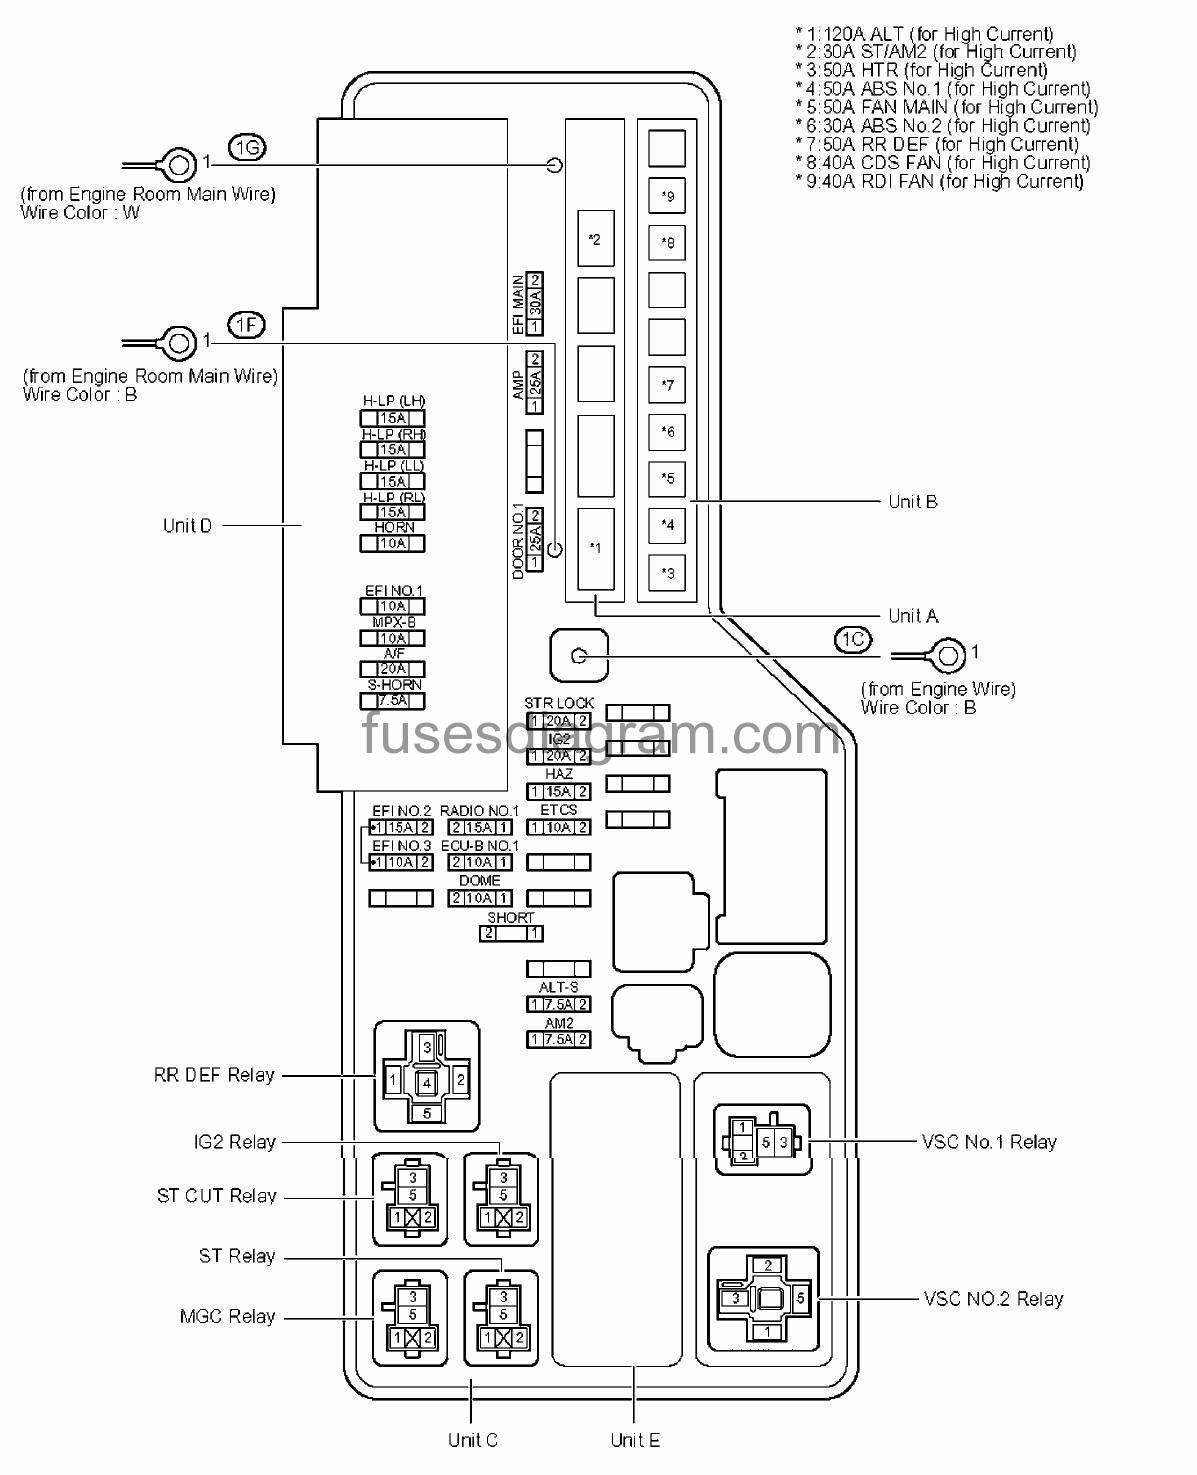 hight resolution of 01 camry wiring diagram wiring diagram centre 2001 camry radio wiring diagrams 01 camry wiring diagram